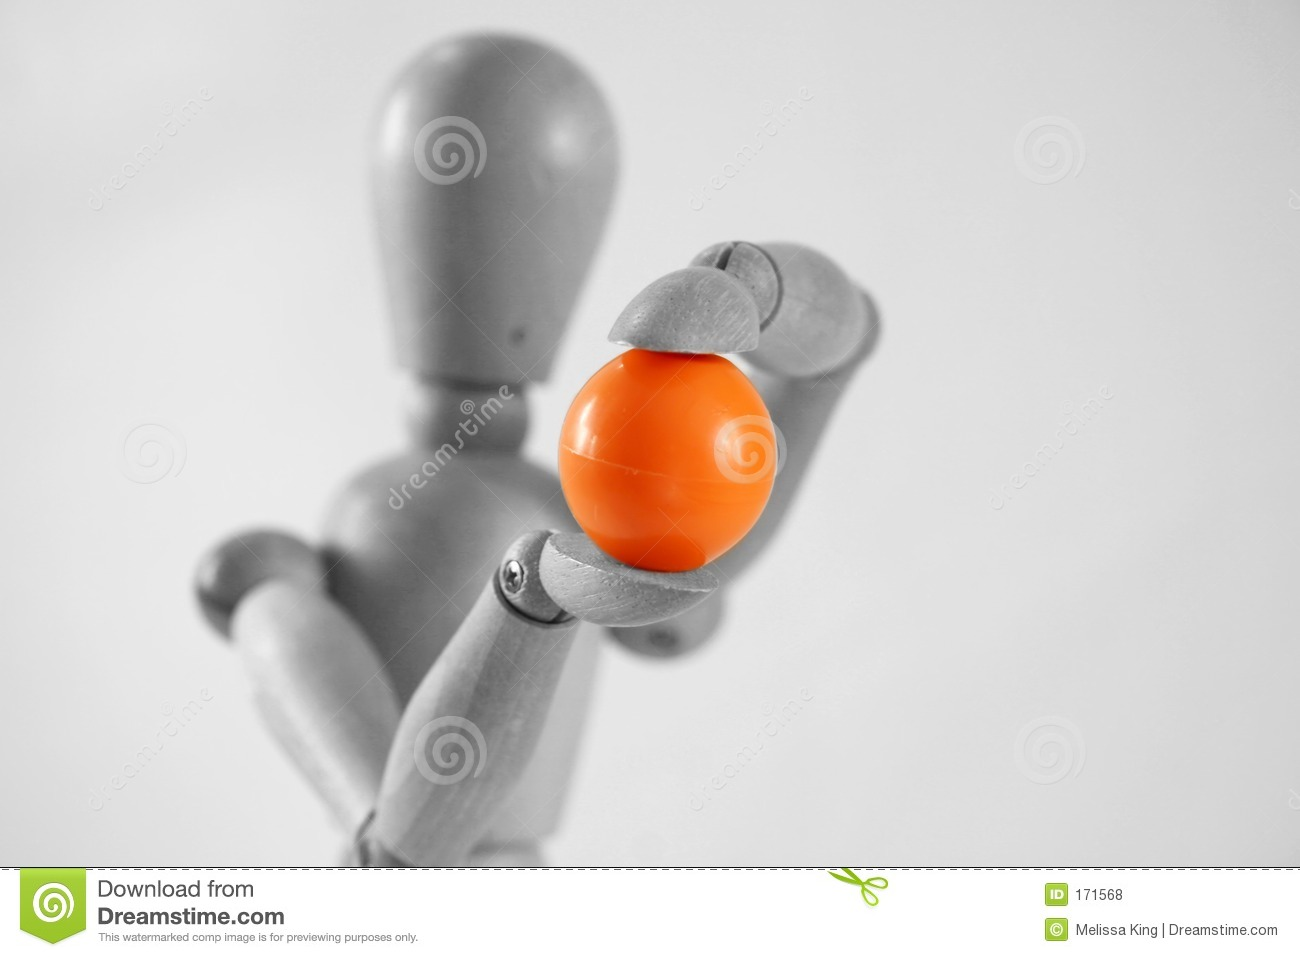 Woody Holding a Orange Ball